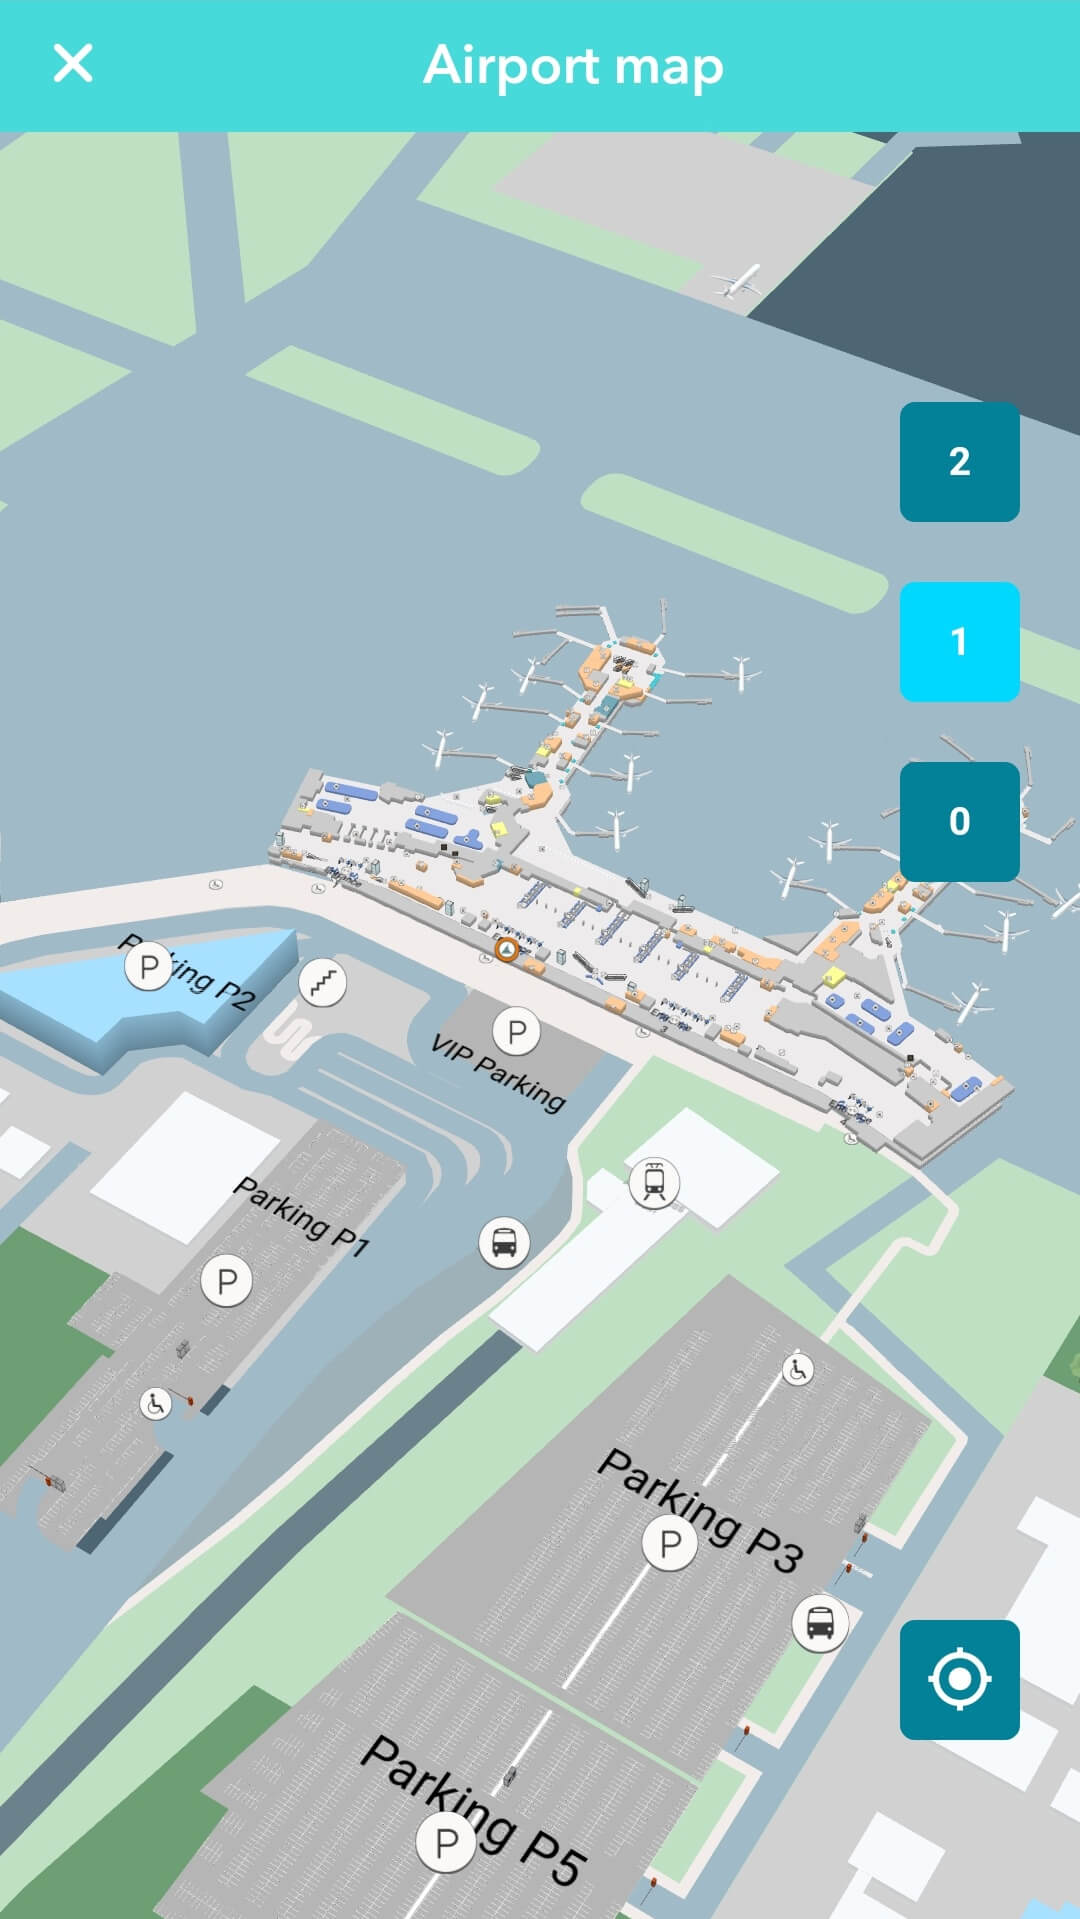 Moscow Domodedovo Airport unveils 3D airport maps offering route planning